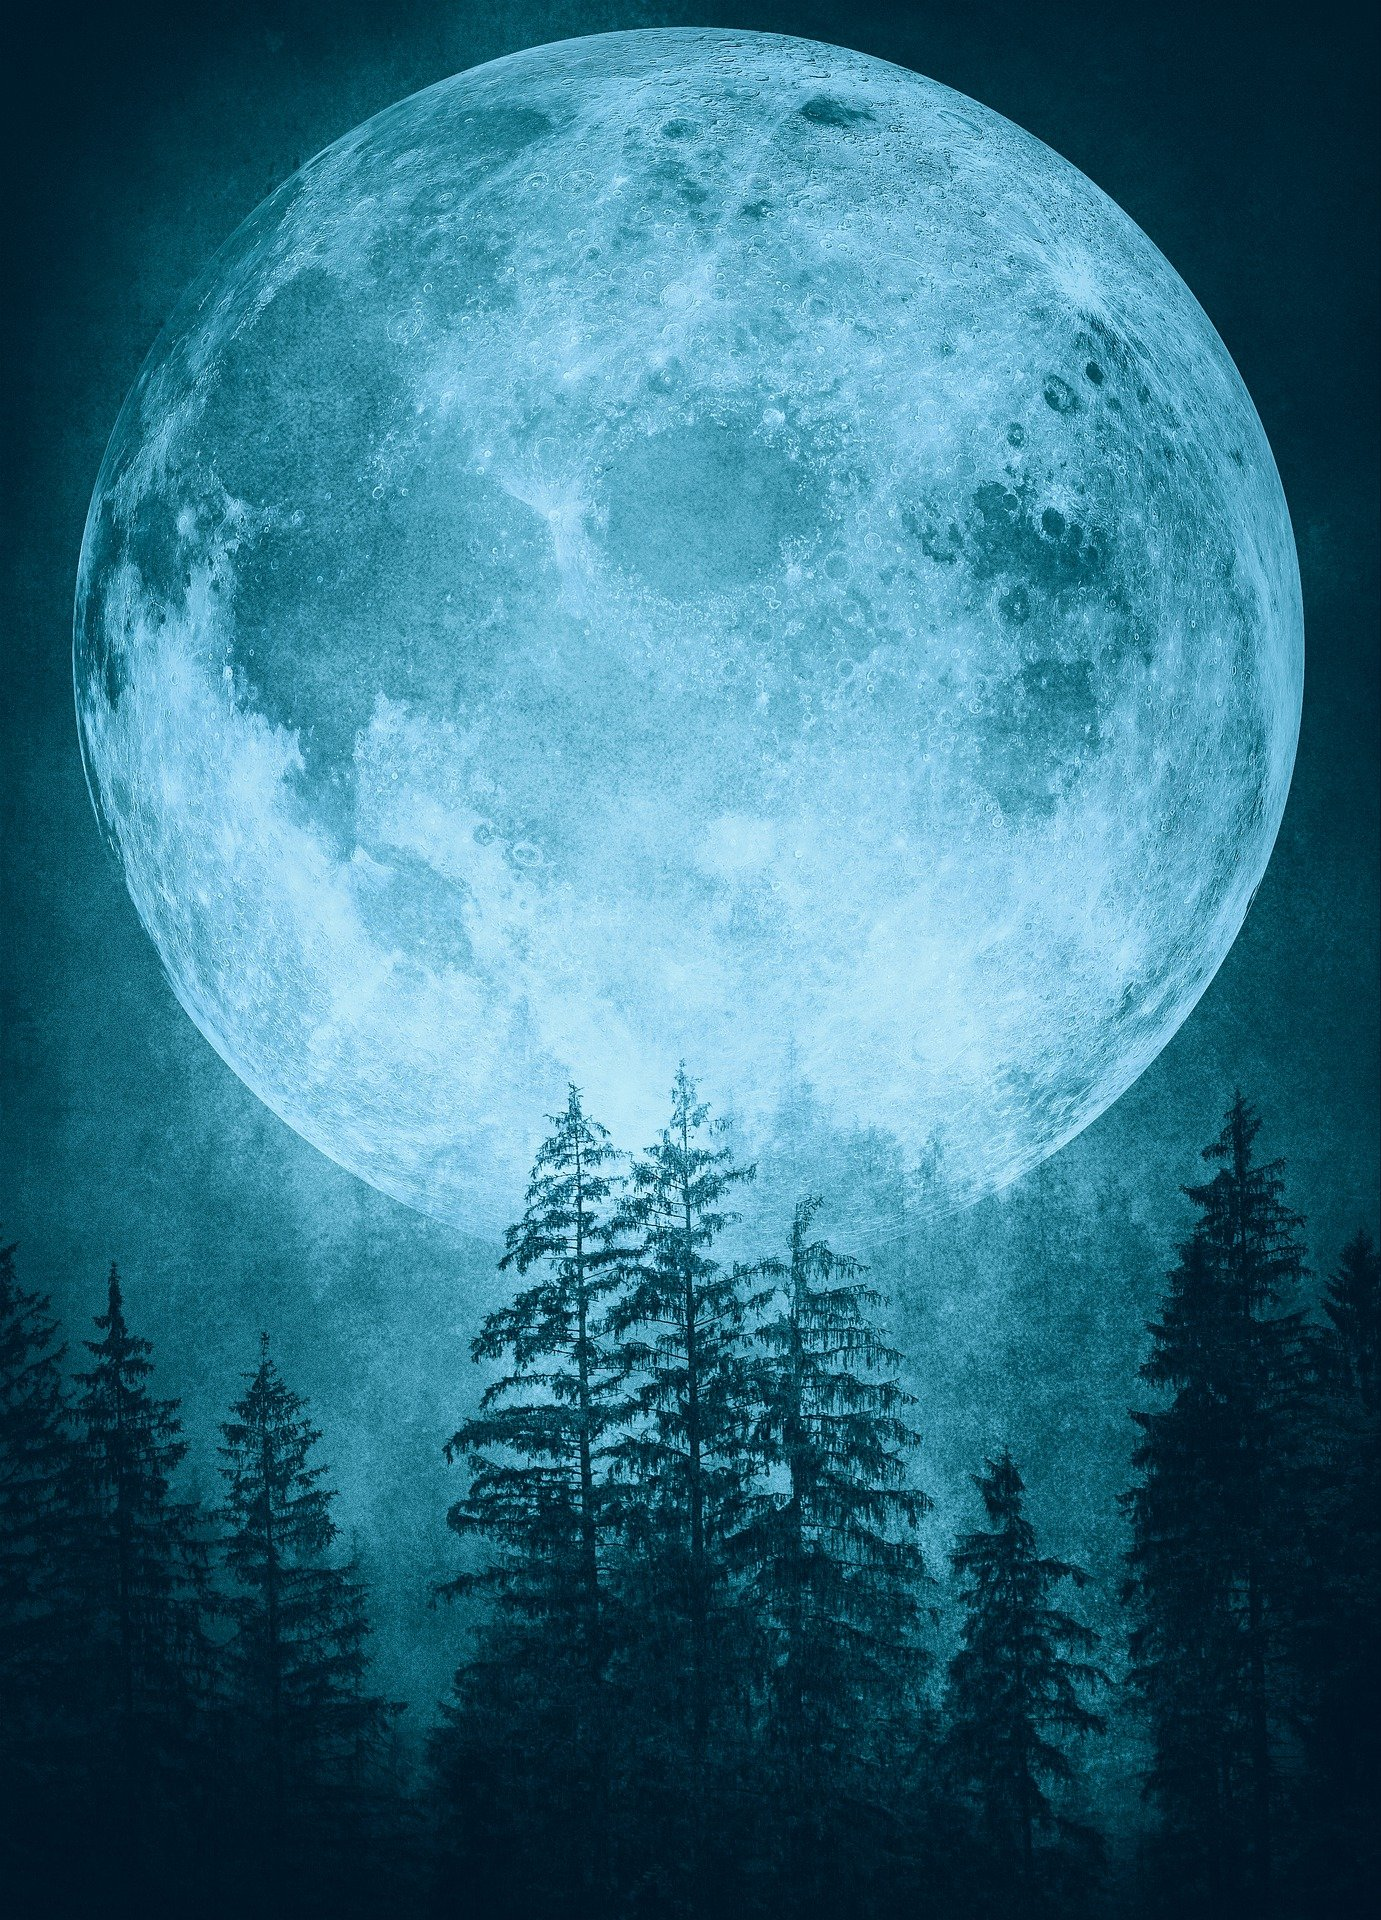 large moon over pine trees